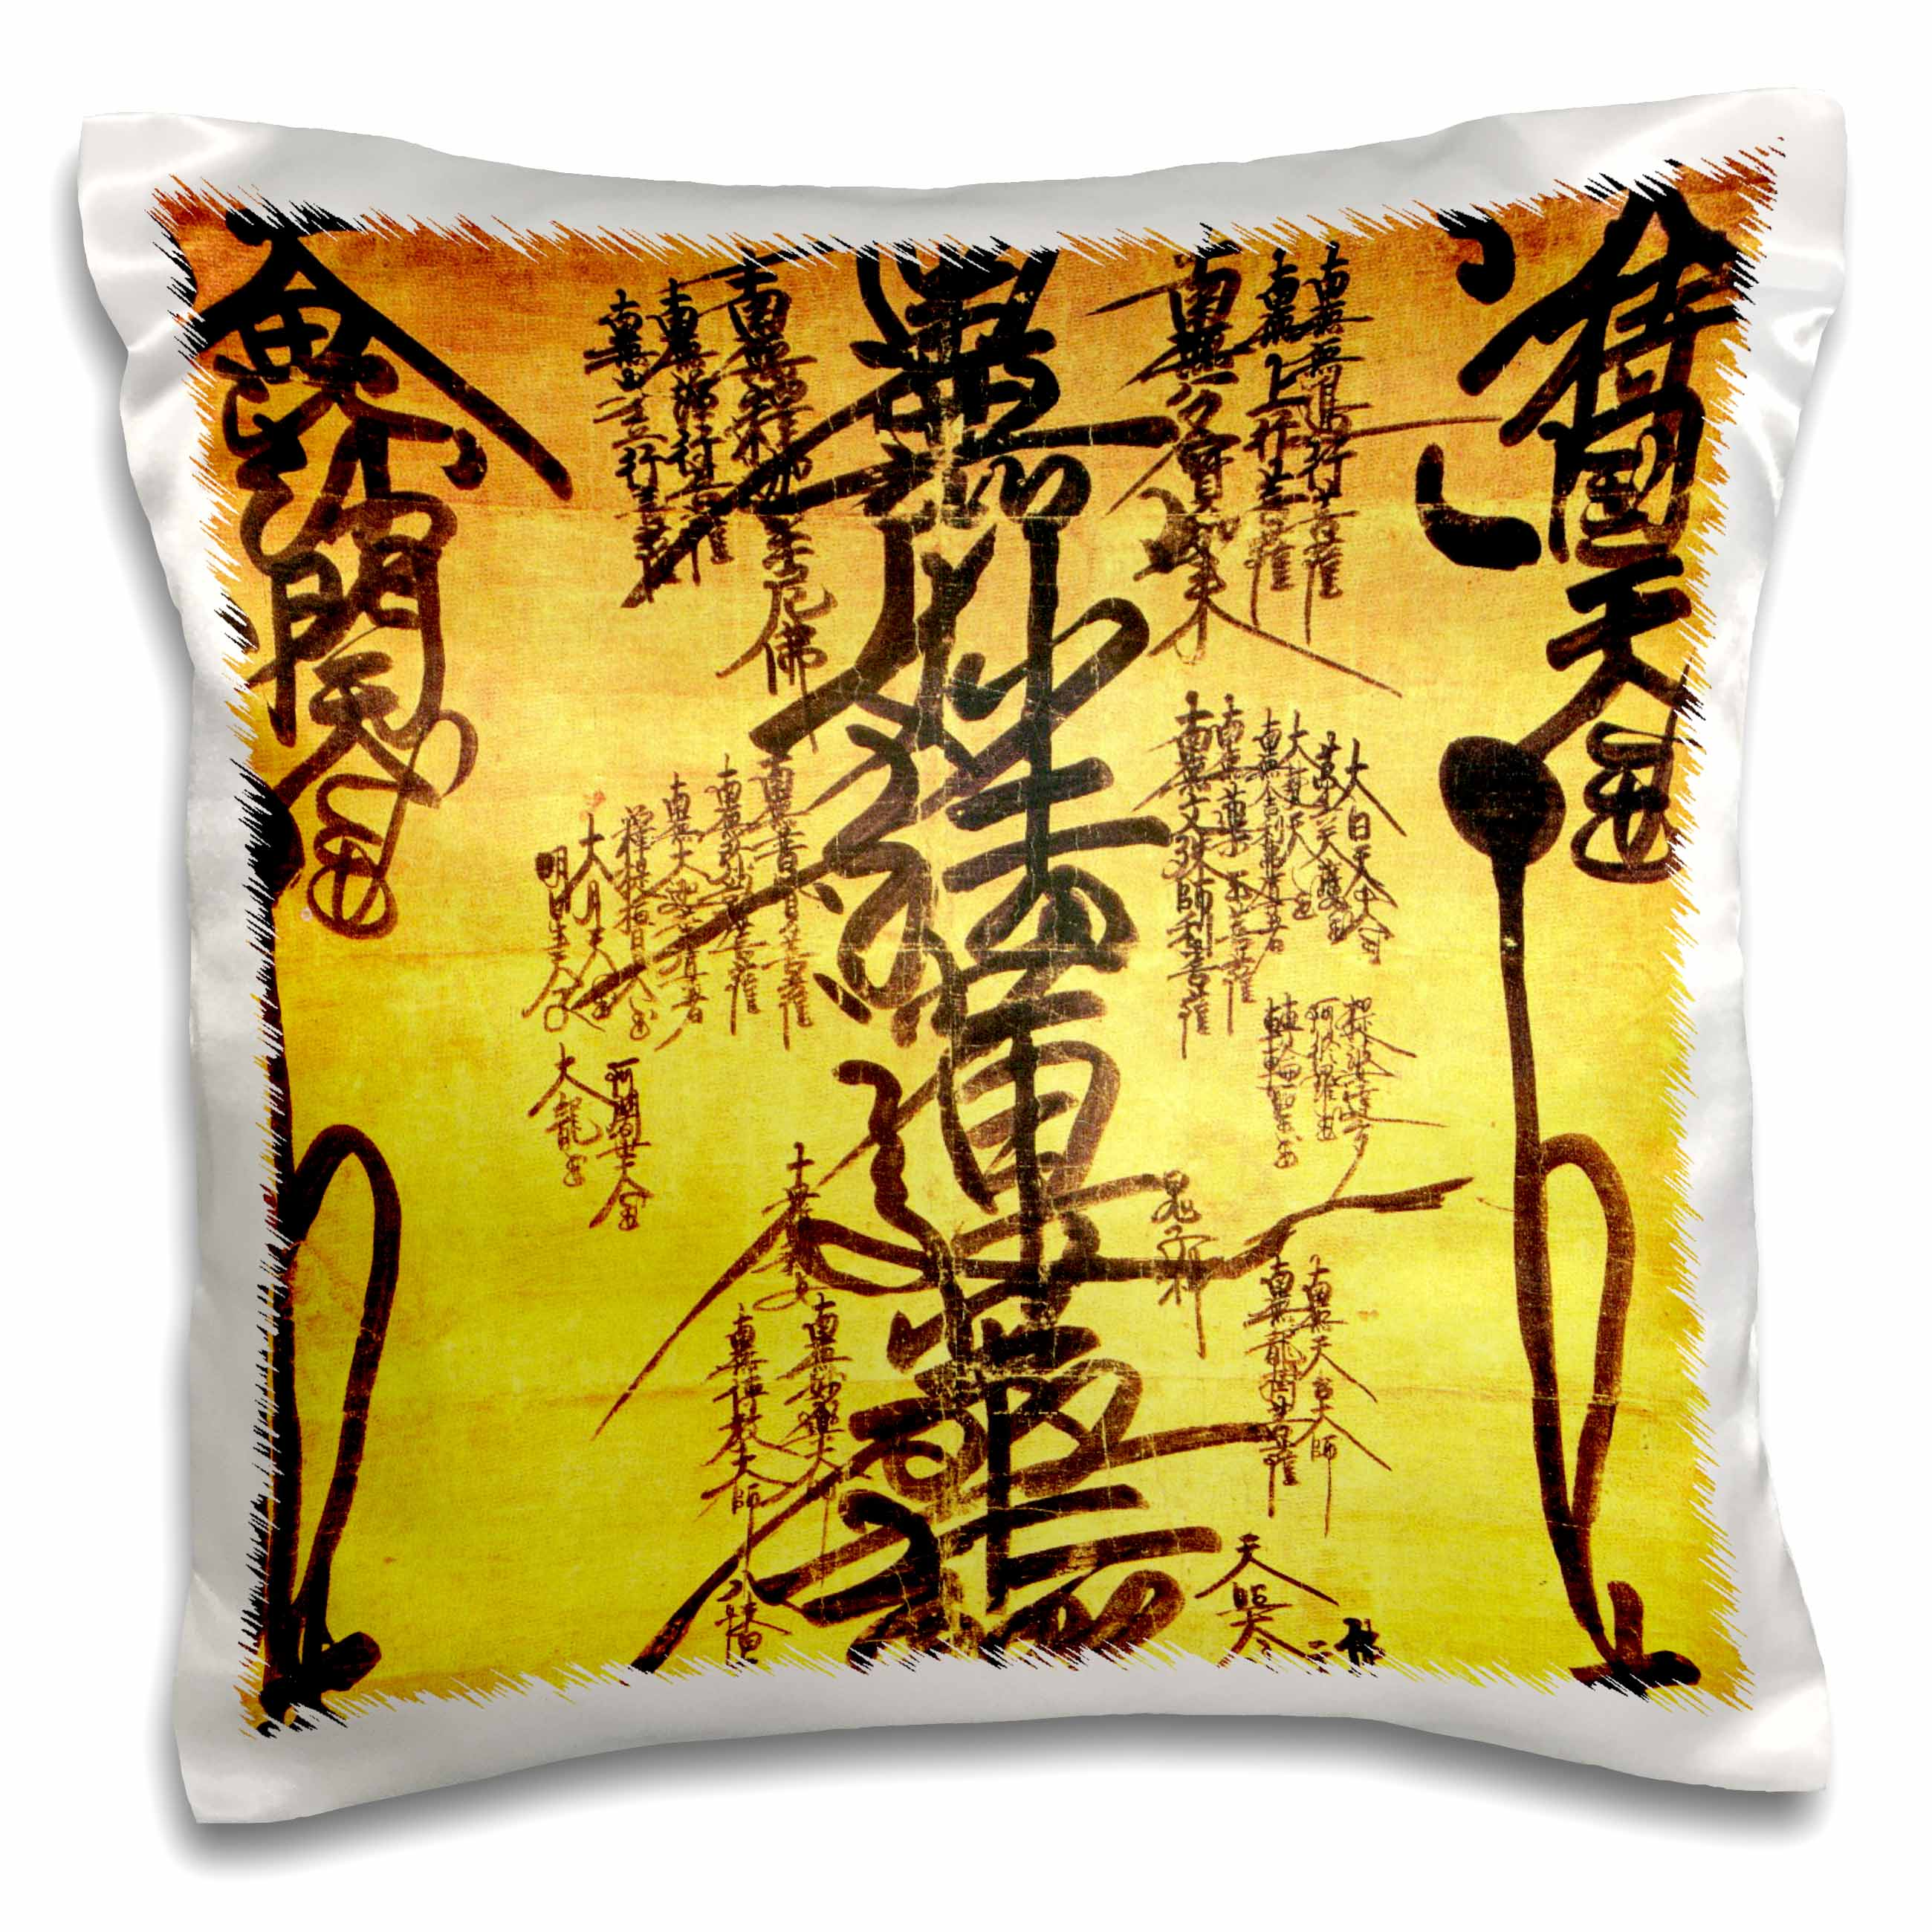 3dRose Oriental design art yellow background , Pillow Case, 16 by 16-inch